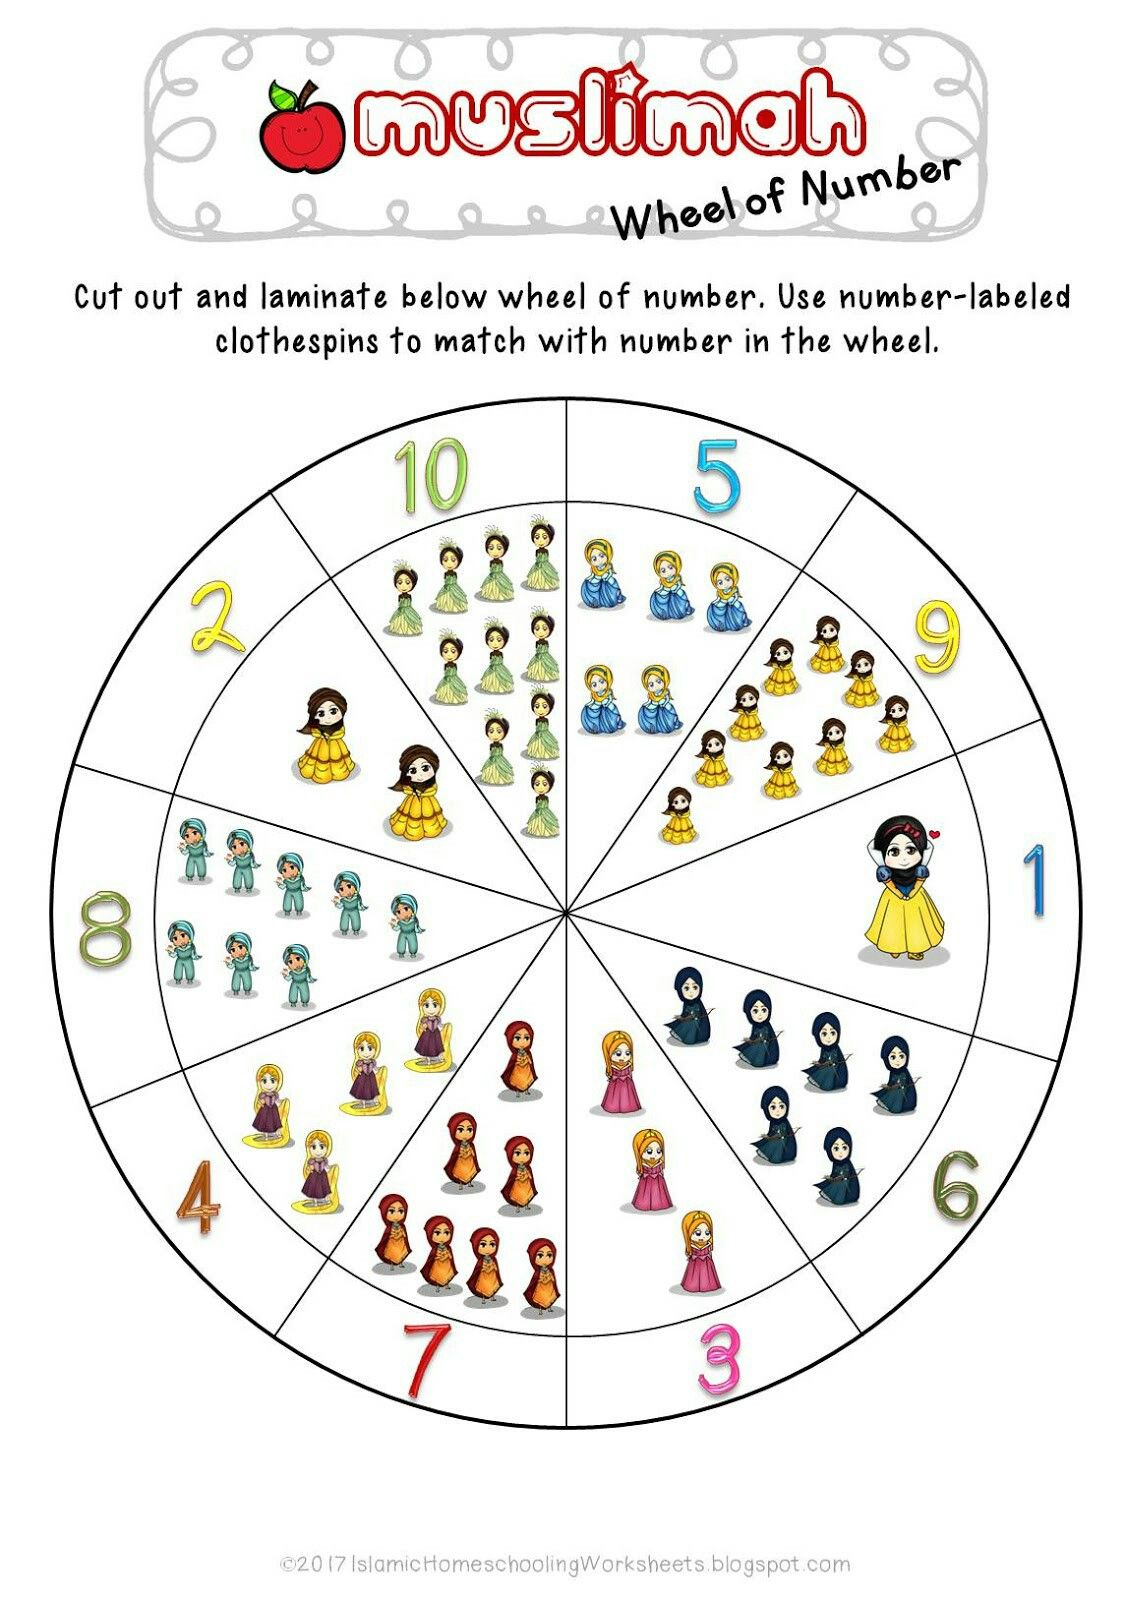 Free Muslimah Wheel Of Number In Disney Princess Preschool Pack Islamic Version